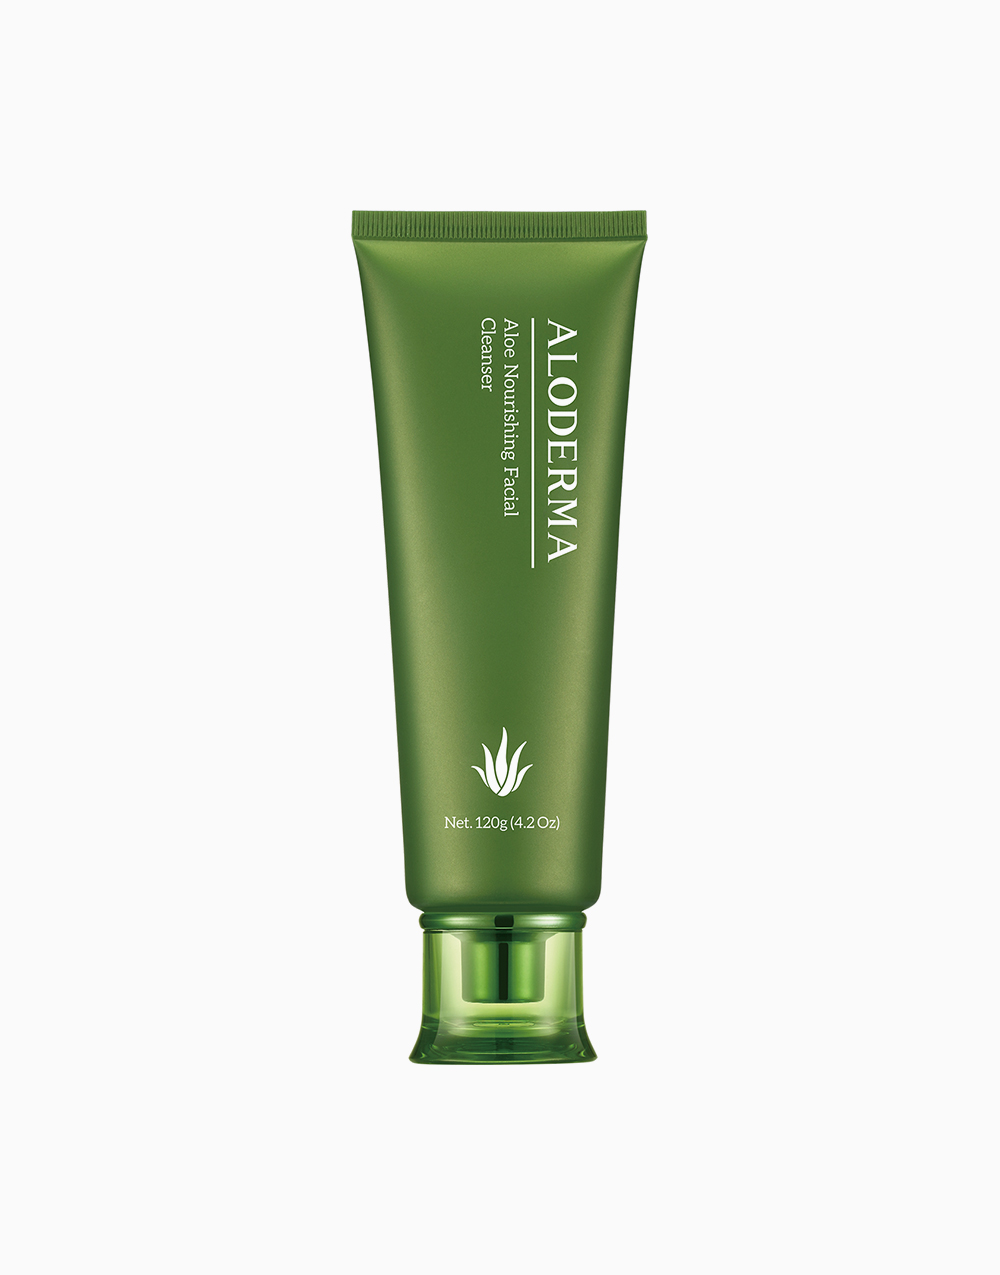 Nourishing Facial Cleanser by Aloderma